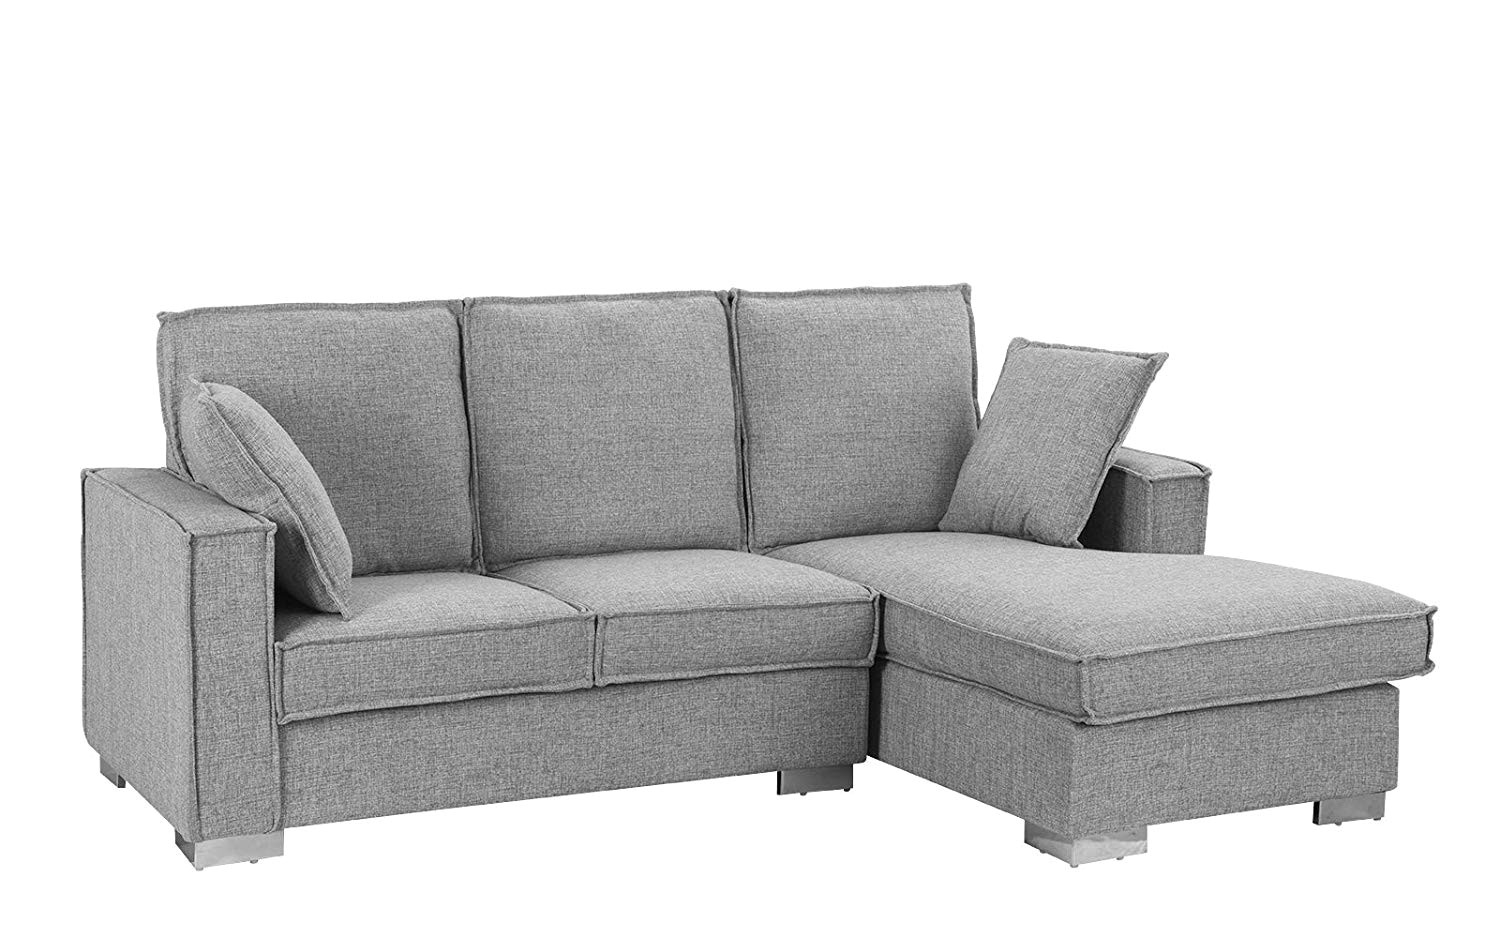 90 Inch Sectional sofa with Chaise Amazon Com Classic Linen Fabric Sectional sofa Small Space L Shape